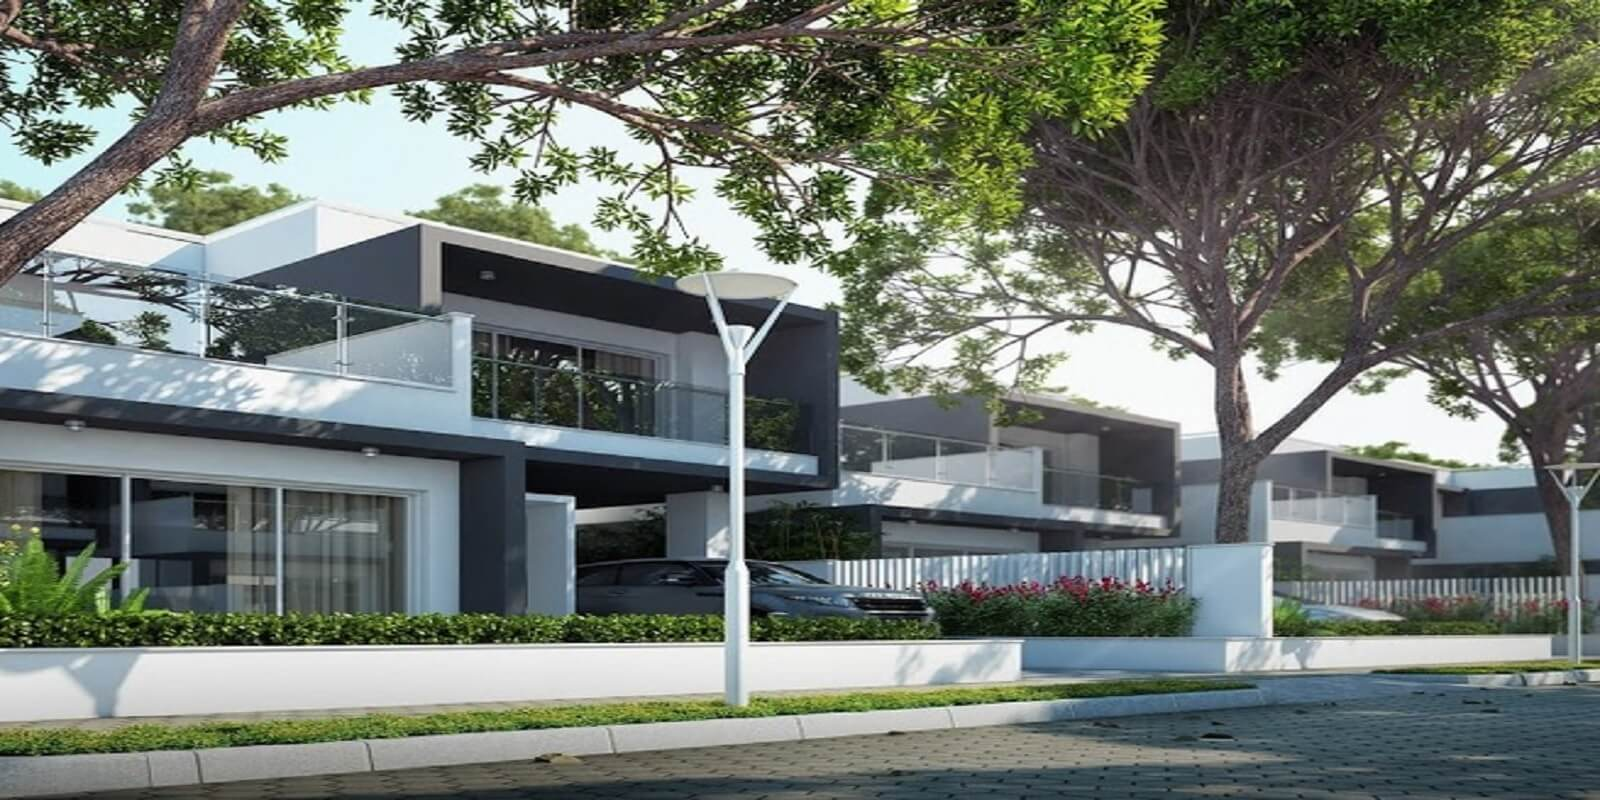 sobha silicon oasis rowhouses project large image1